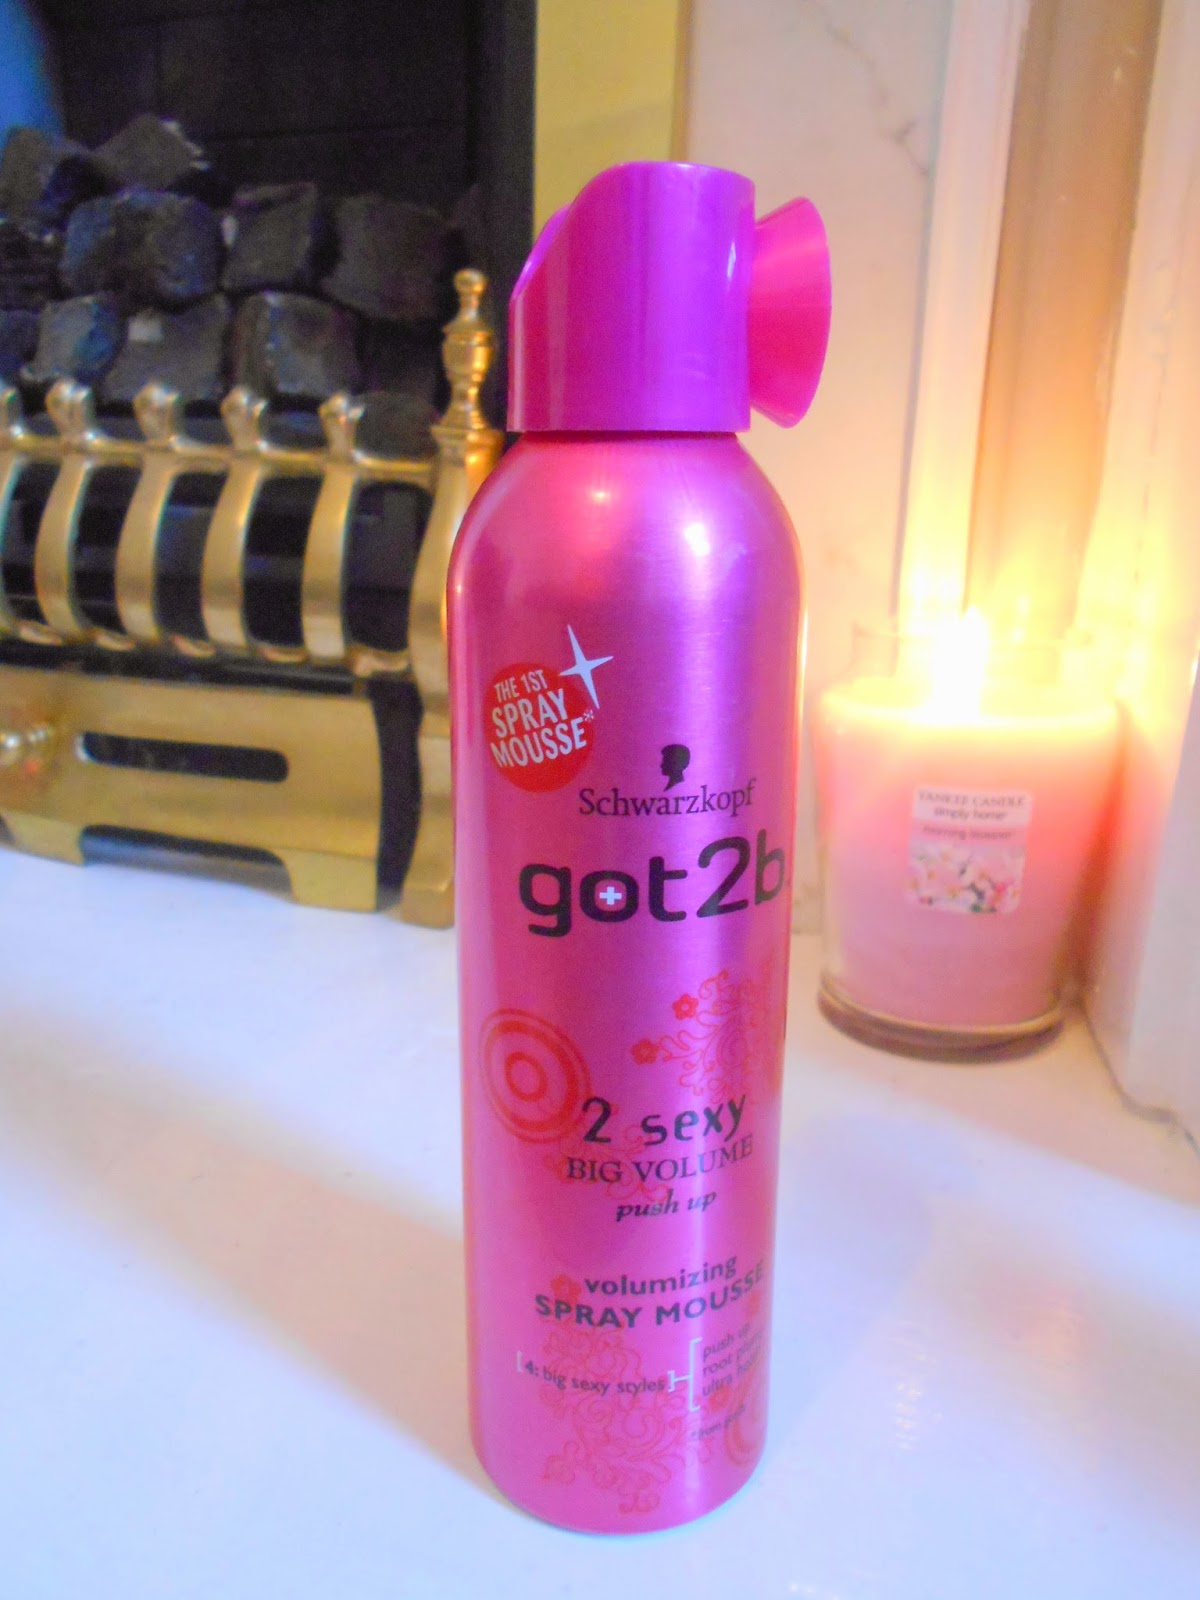 Schwarzkopf got2b 2 Sexy Volumizing Spray Mousse - Review